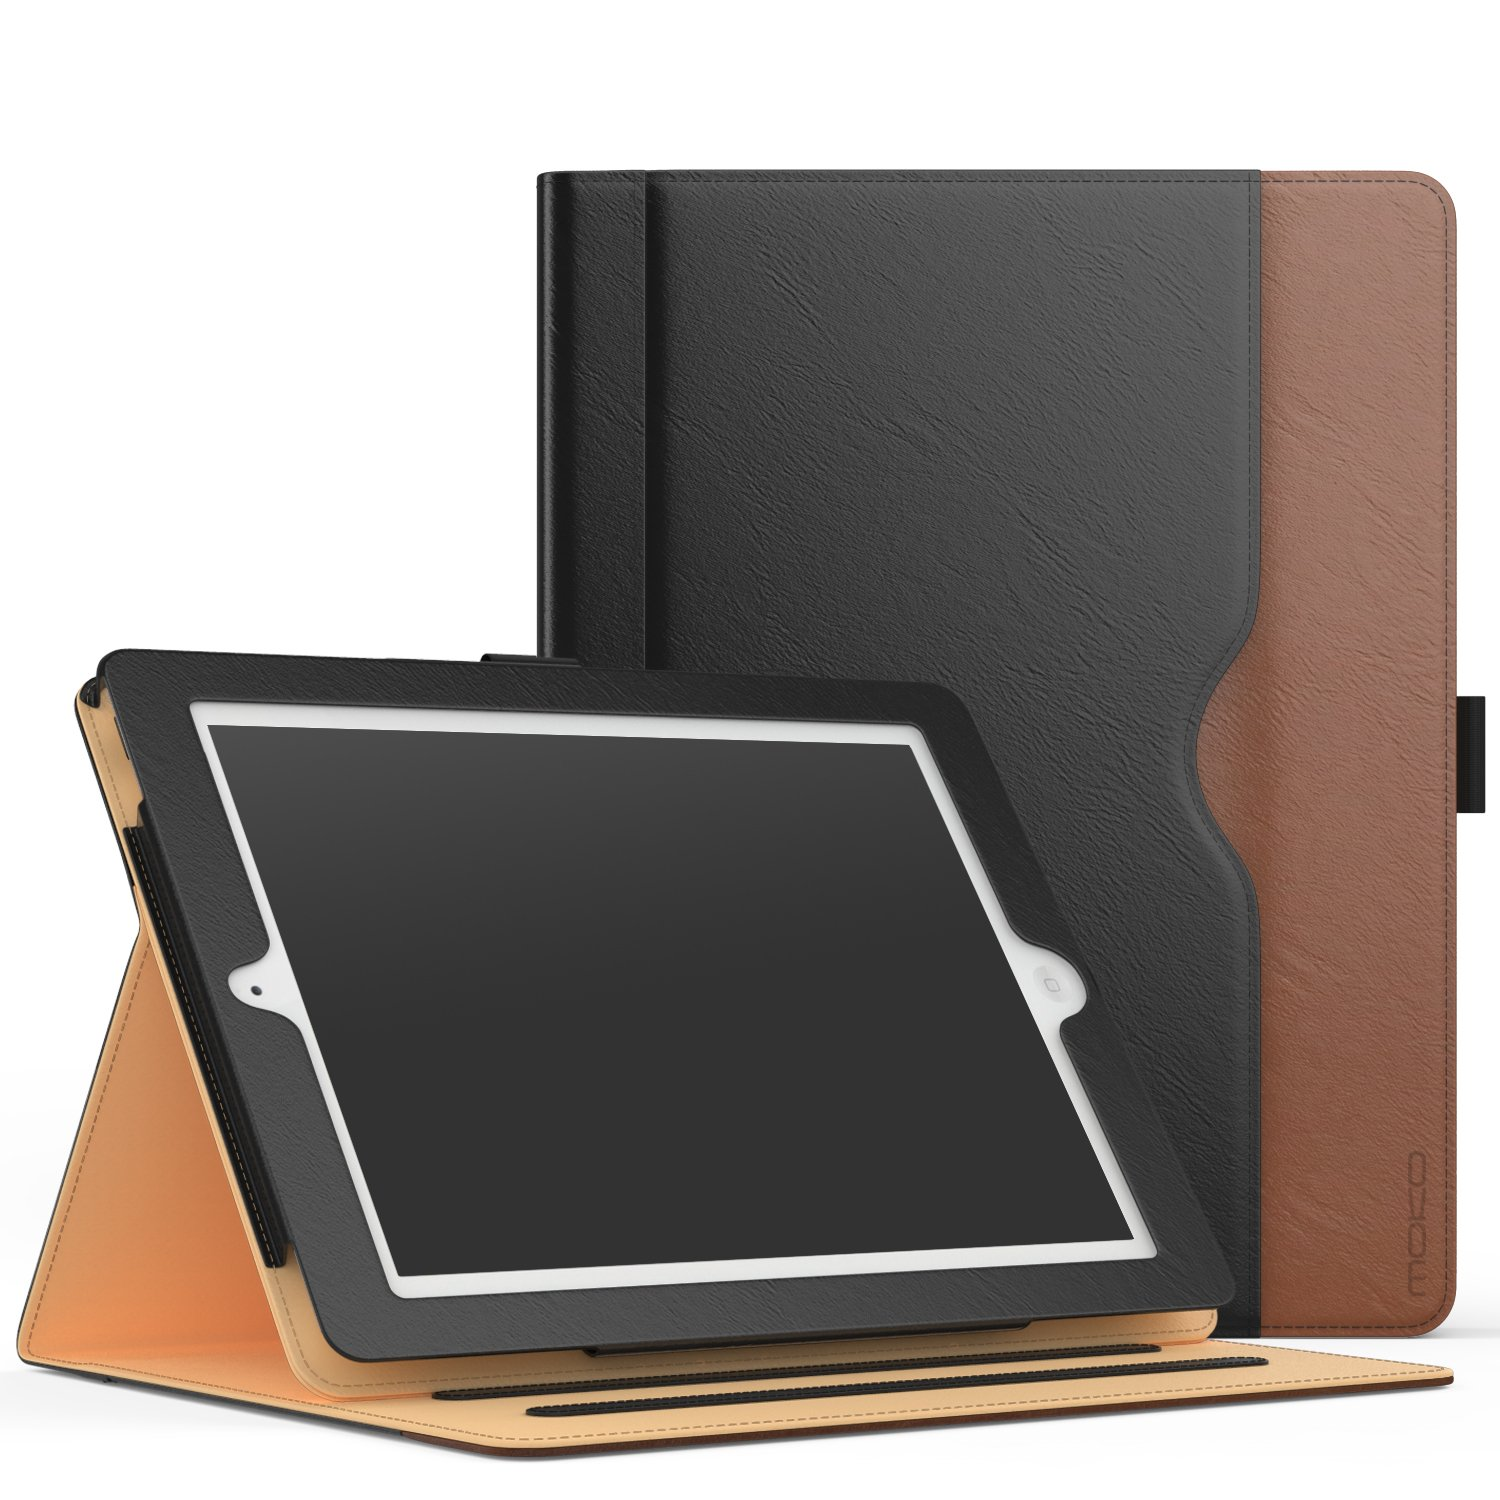 MoKo Case for iPad 2/3 / 4 - Slim Folding Stand Folio Cover with Auto Wake/Sleep and Document Card Slots, Multiple Viewing Angles for iPad 2 / The New iPad 3 (3rd Gen) / iPad 4, Black & Brown